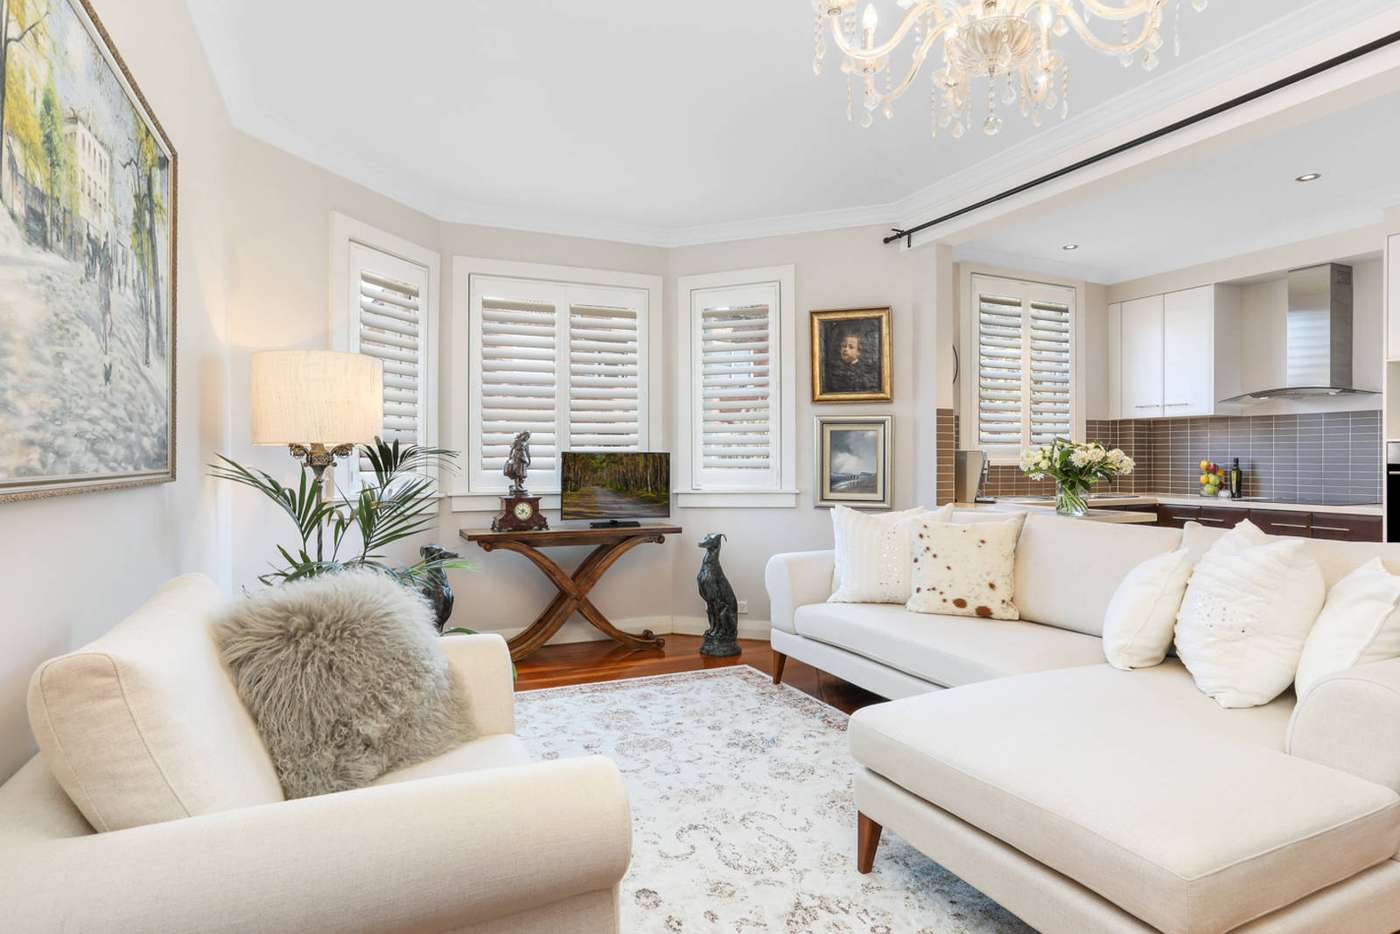 Main view of Homely apartment listing, 8/5 Elanora Street, Rose Bay NSW 2029